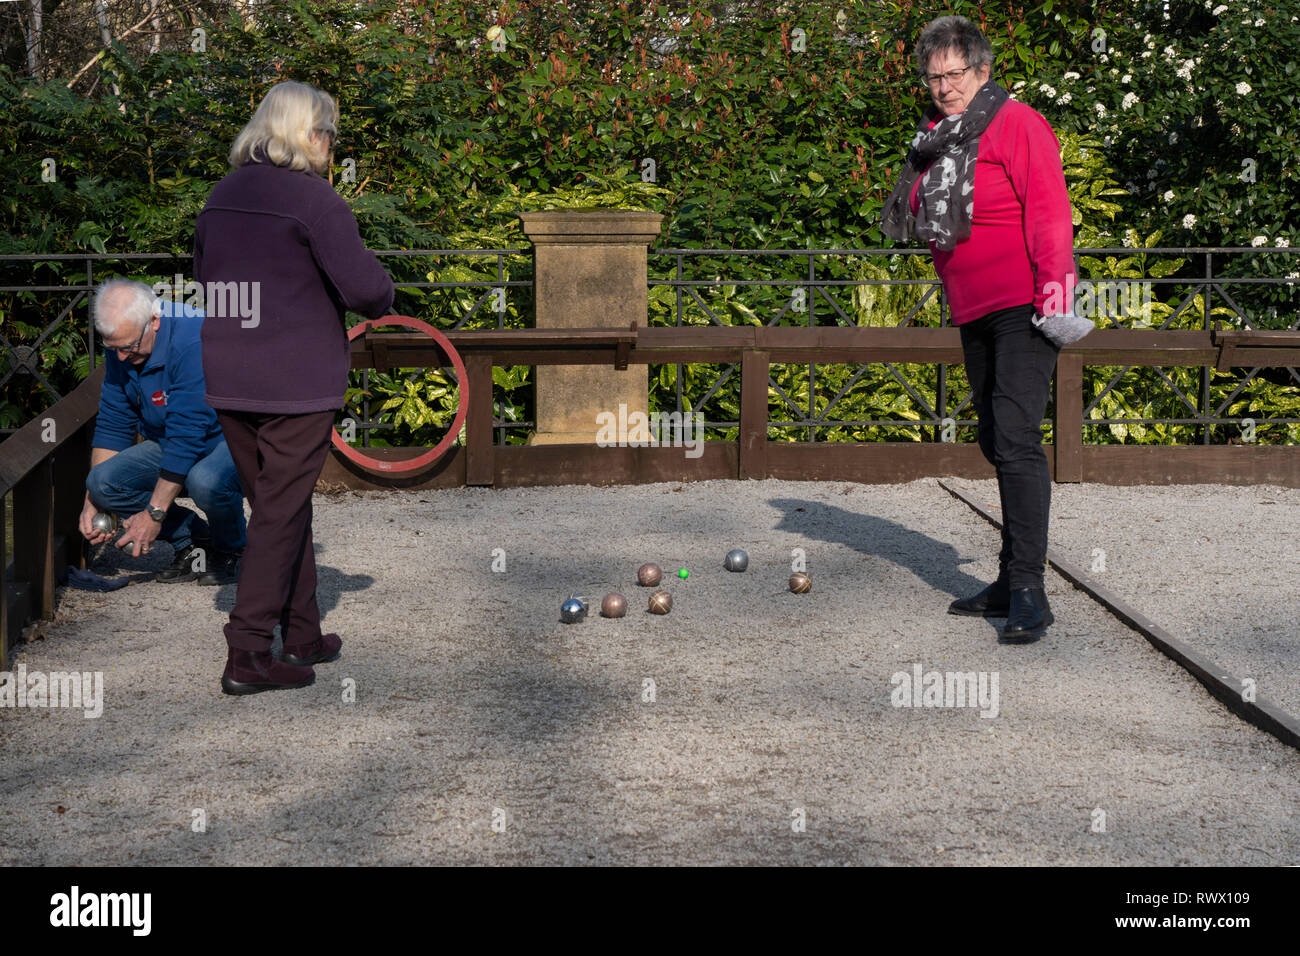 Three people playing a game of Petanque outdoors in Harrogate,North Yorkshire,England,UK. - Stock Image